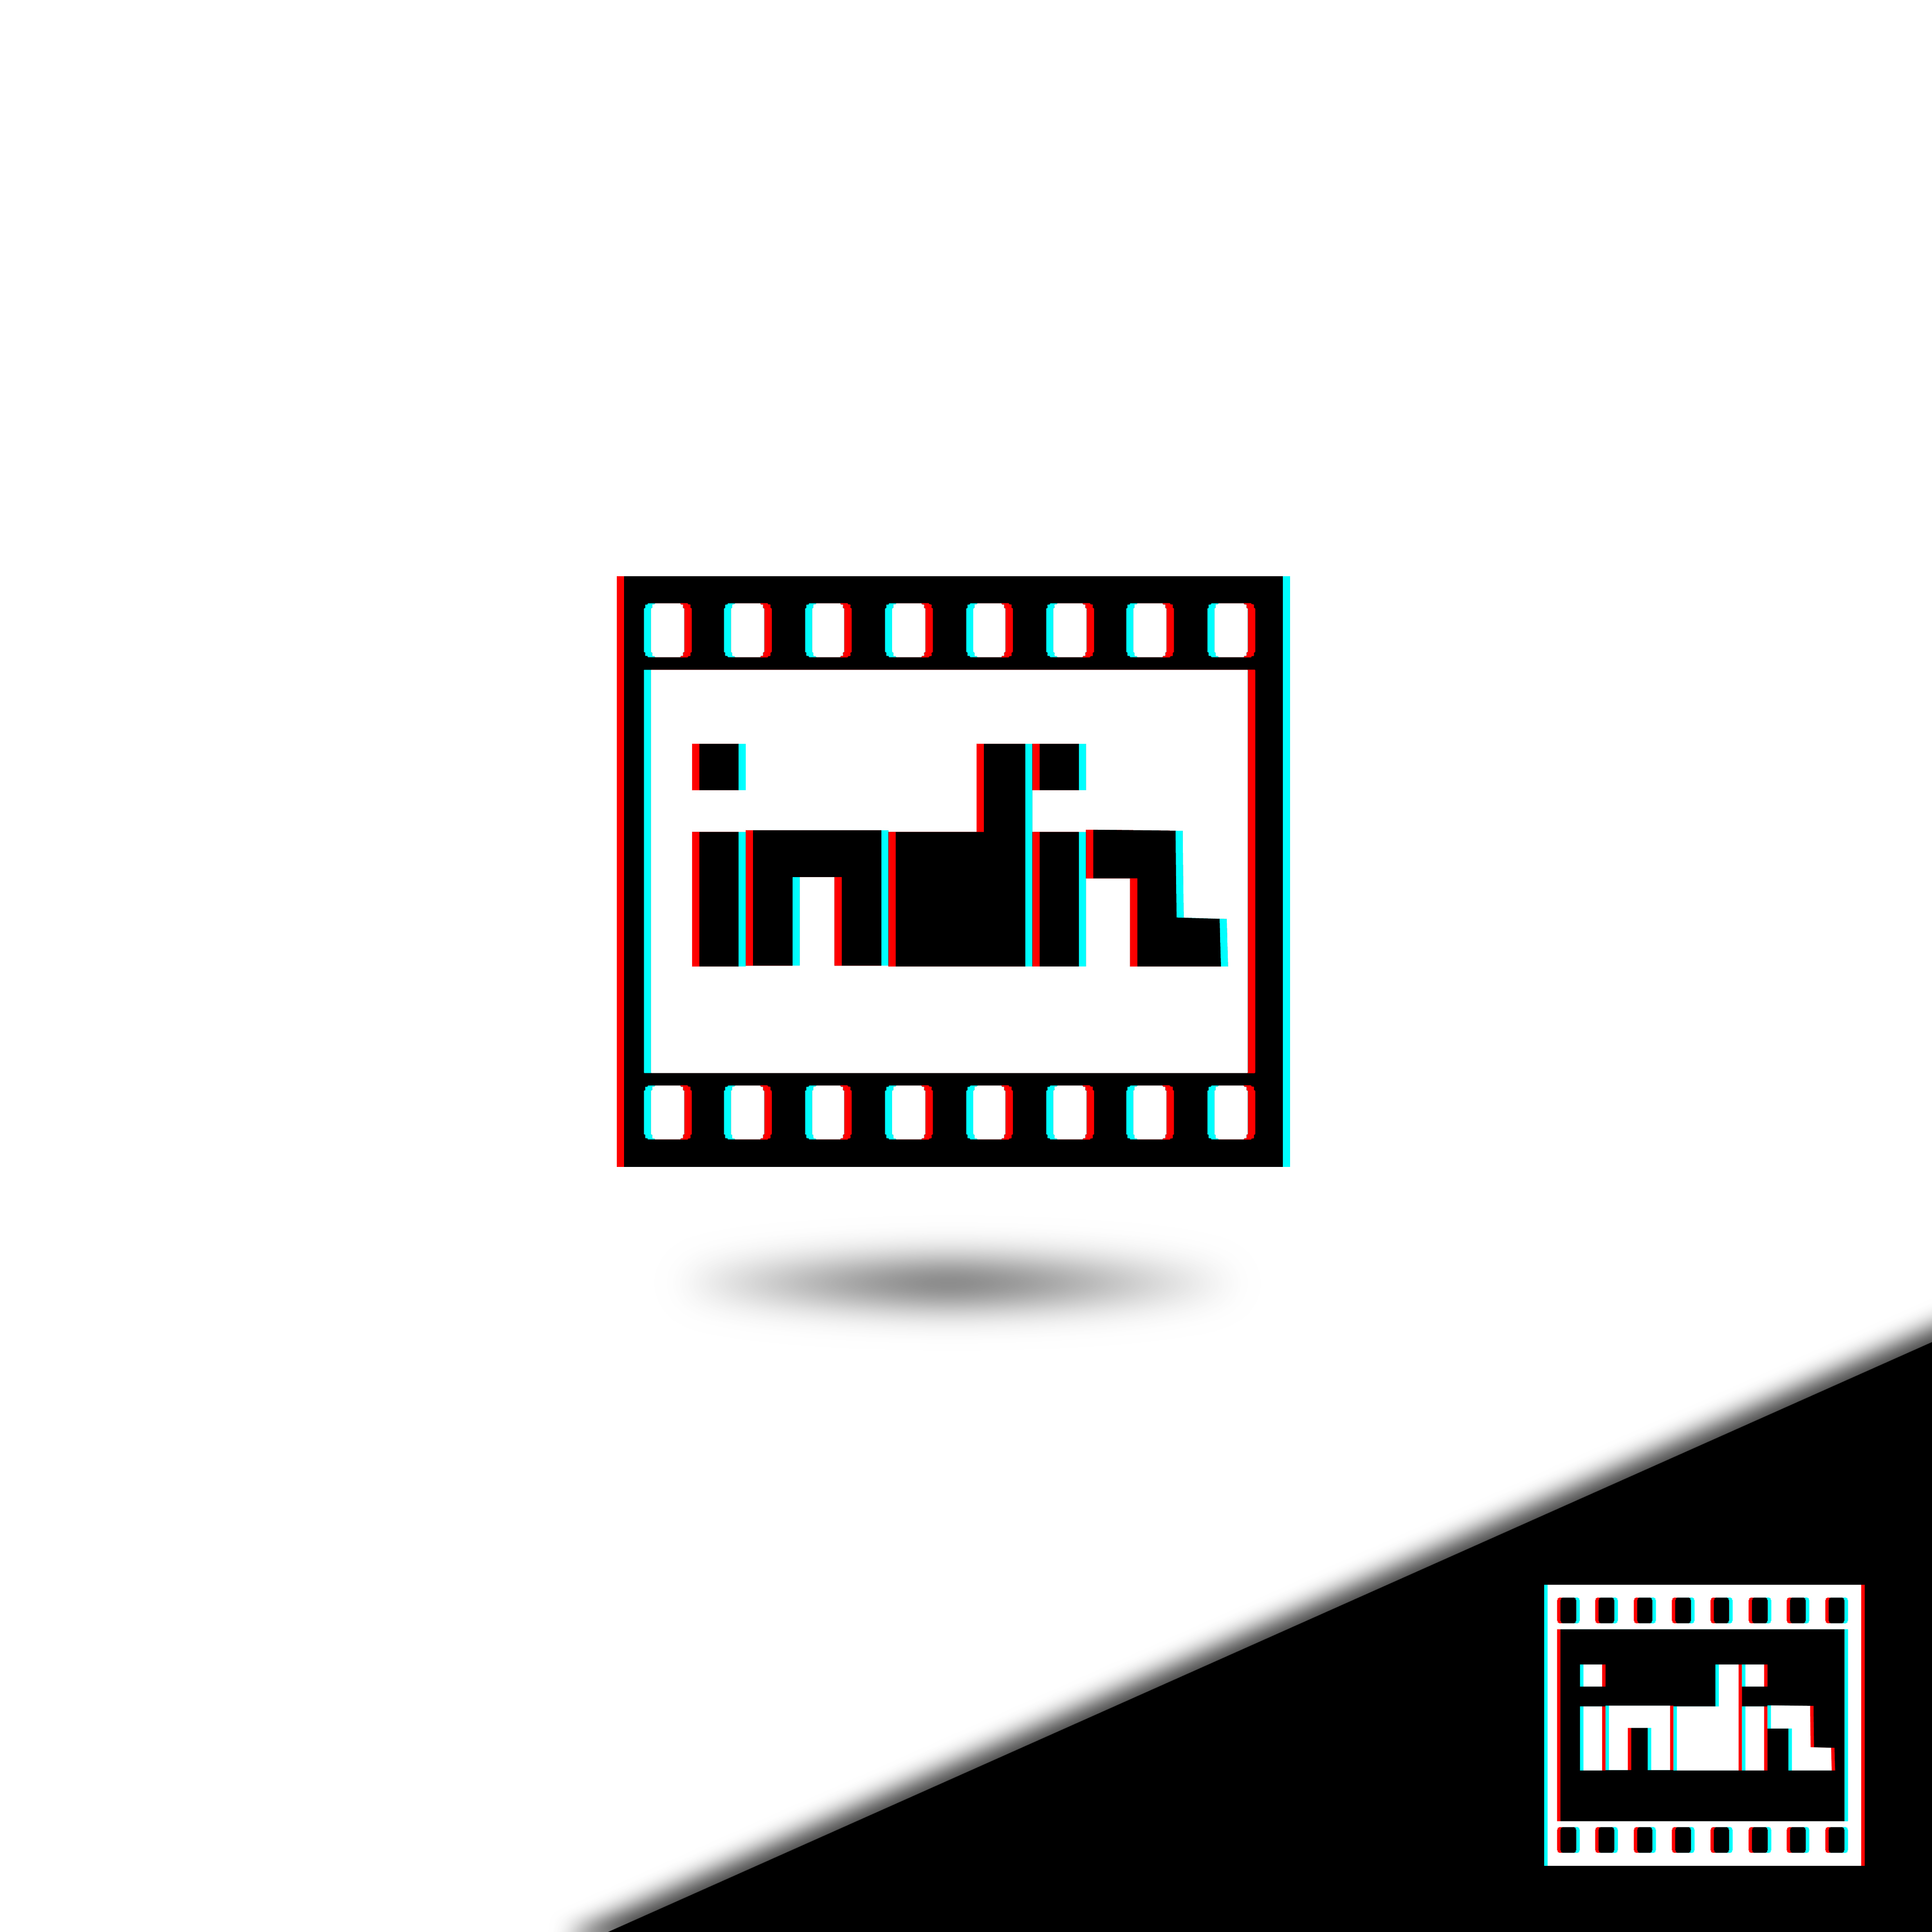 Logo Design by Utkarsh Bhandari - Entry No. 178 in the Logo Design Contest Fun Logo Design for Indiz.